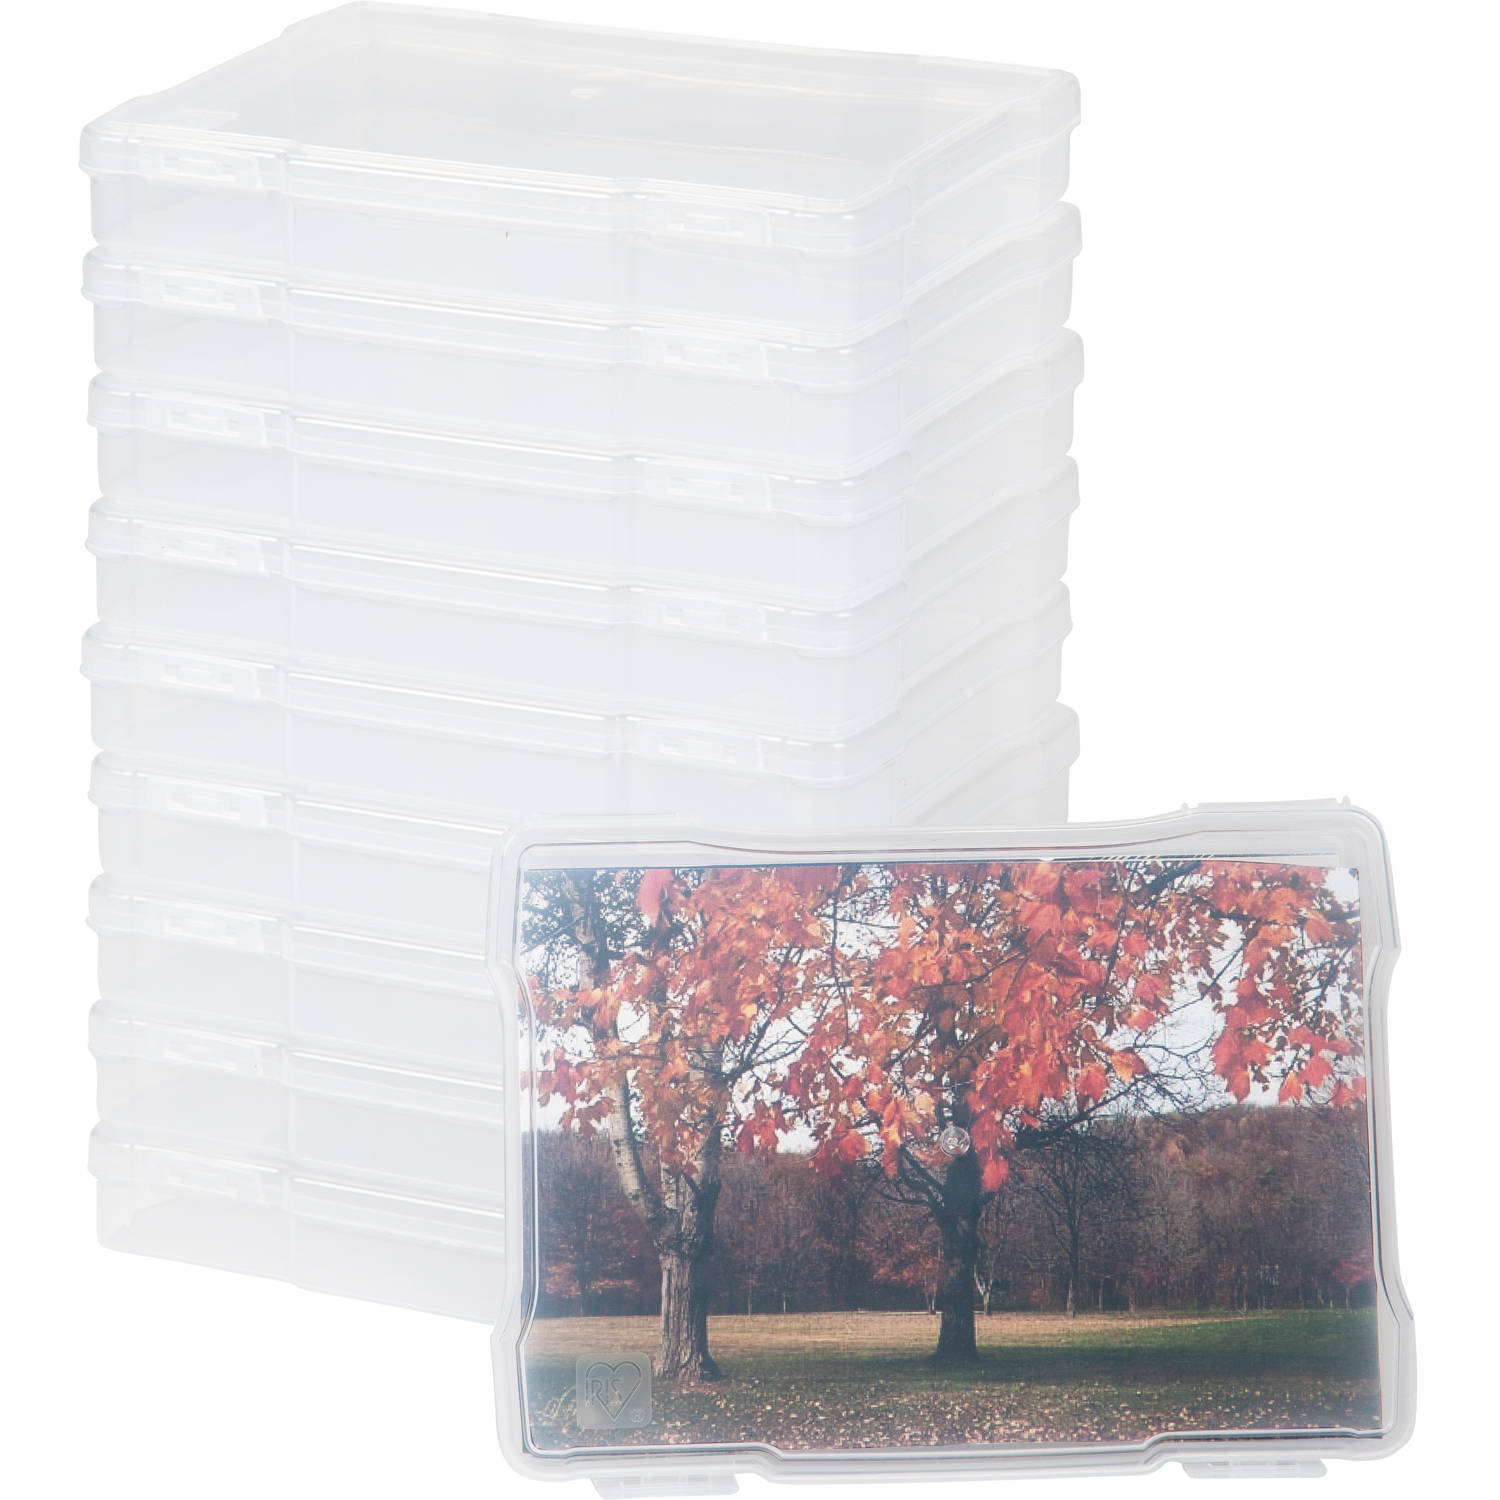 IRIS 5 x 7 Inch Photo Storage and Embellishement Craft Case, Clear Set of 10